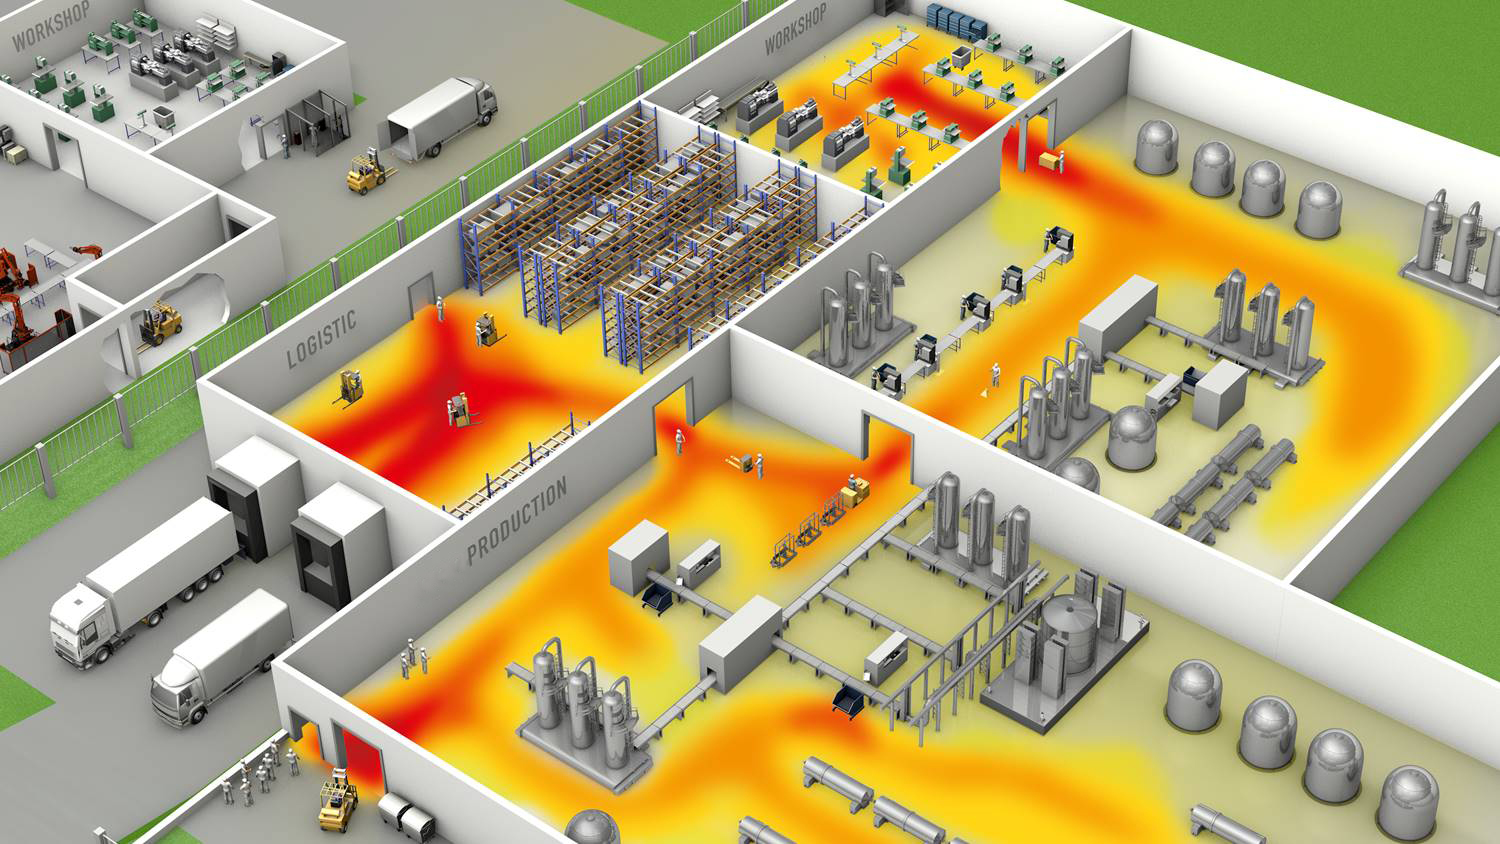 Clean Factory Heatmap where dirt dust bacteria and damp spreads on the floor